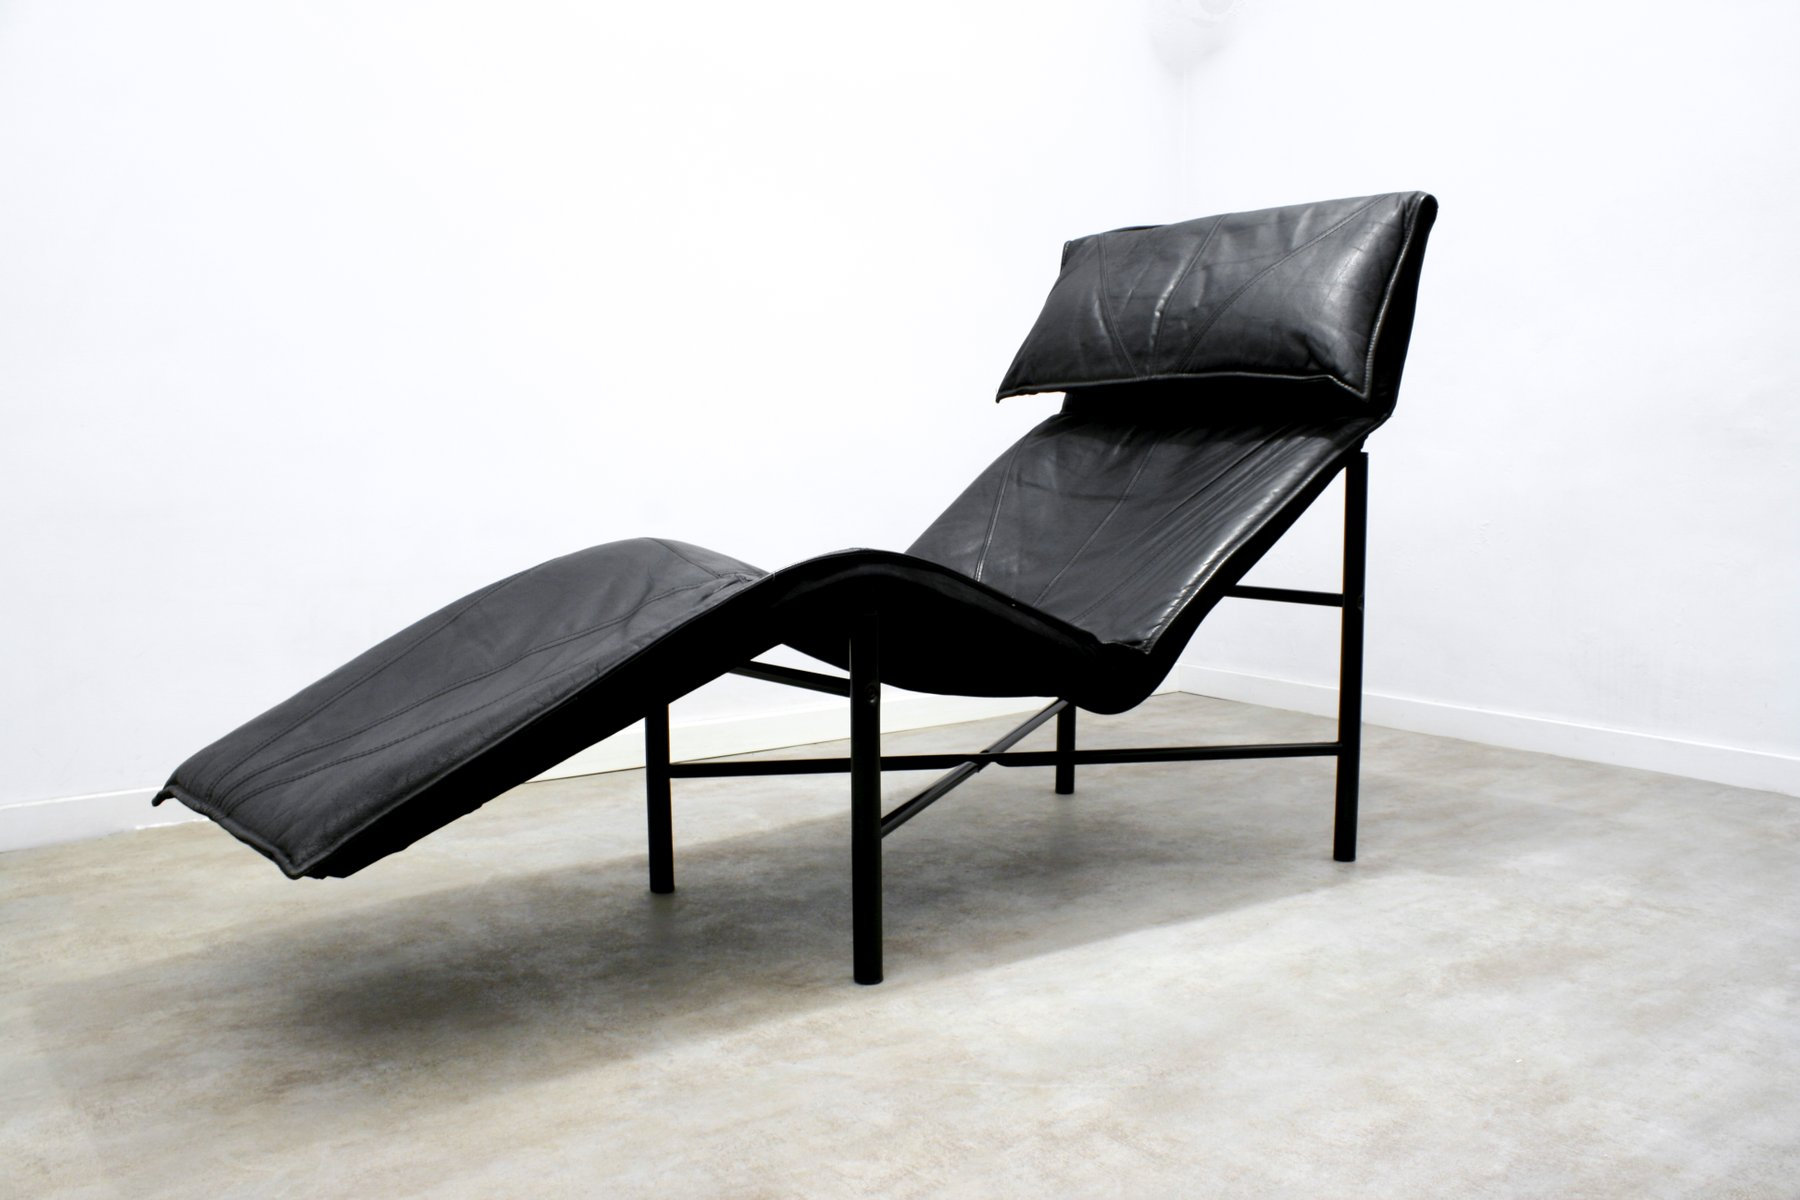 Chaiselongue ikea  Black Leather Skye Chaise Longue by Tord Björklund for Ikea, 1980s ...